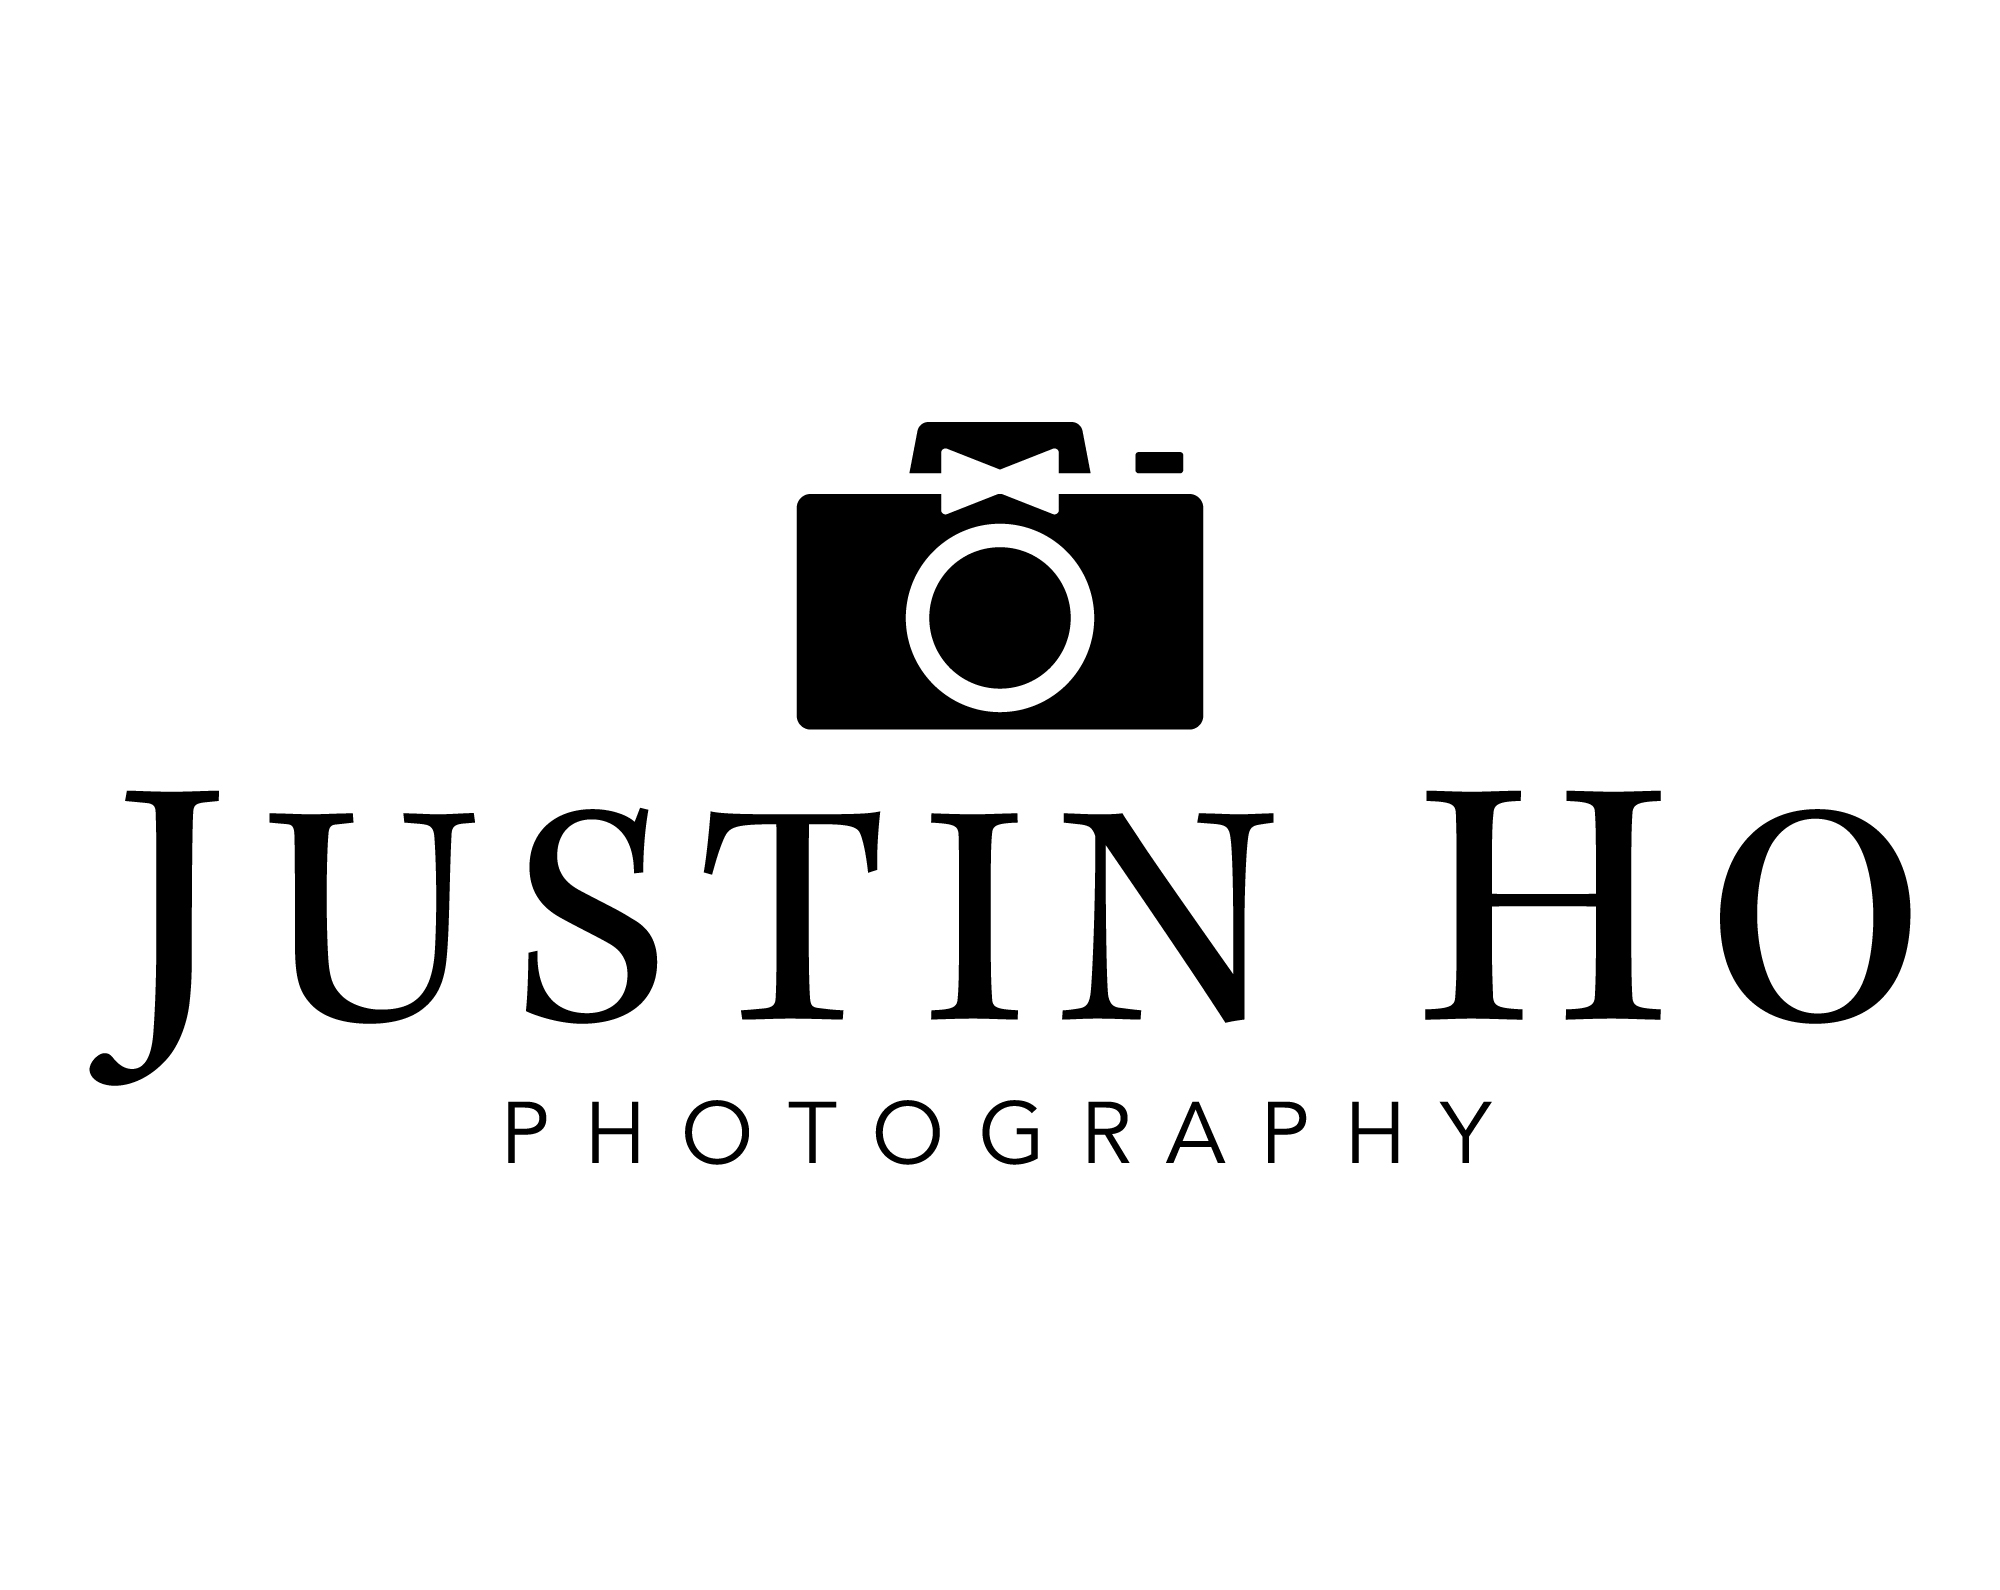 Click here to visit website of Justin Ho Photography